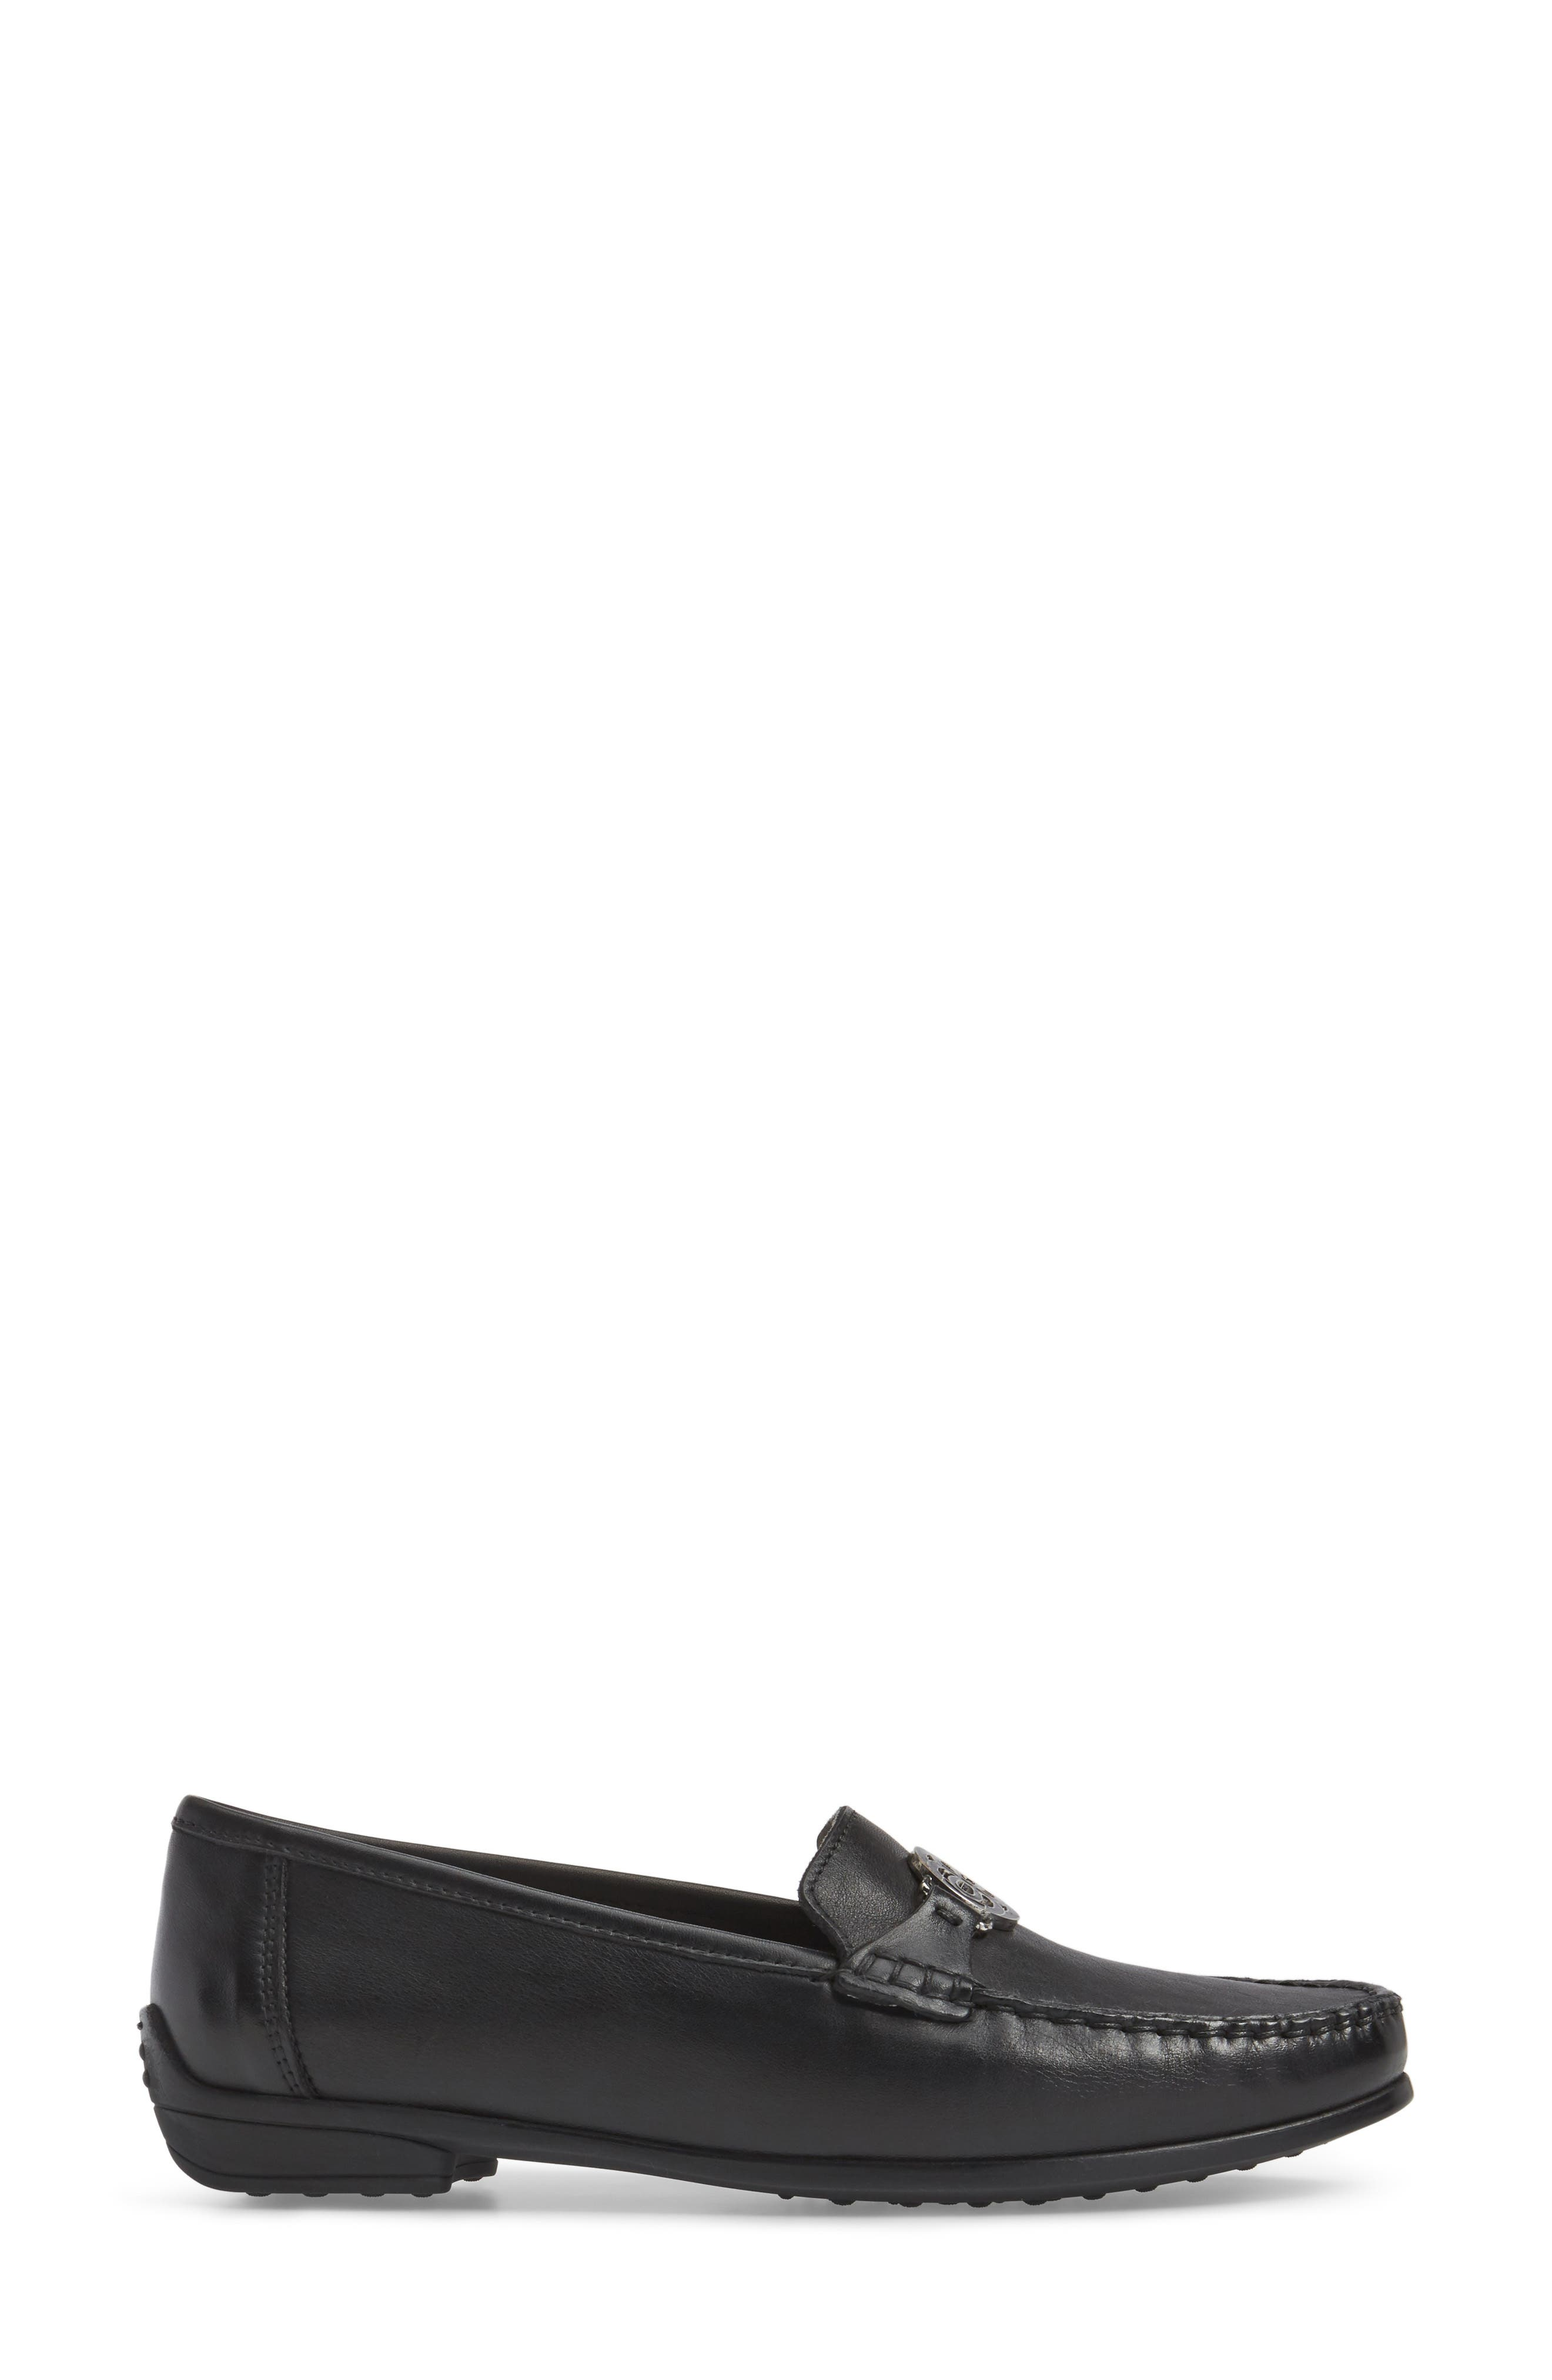 Blanche Loafer,                             Alternate thumbnail 3, color,                             Black Leather